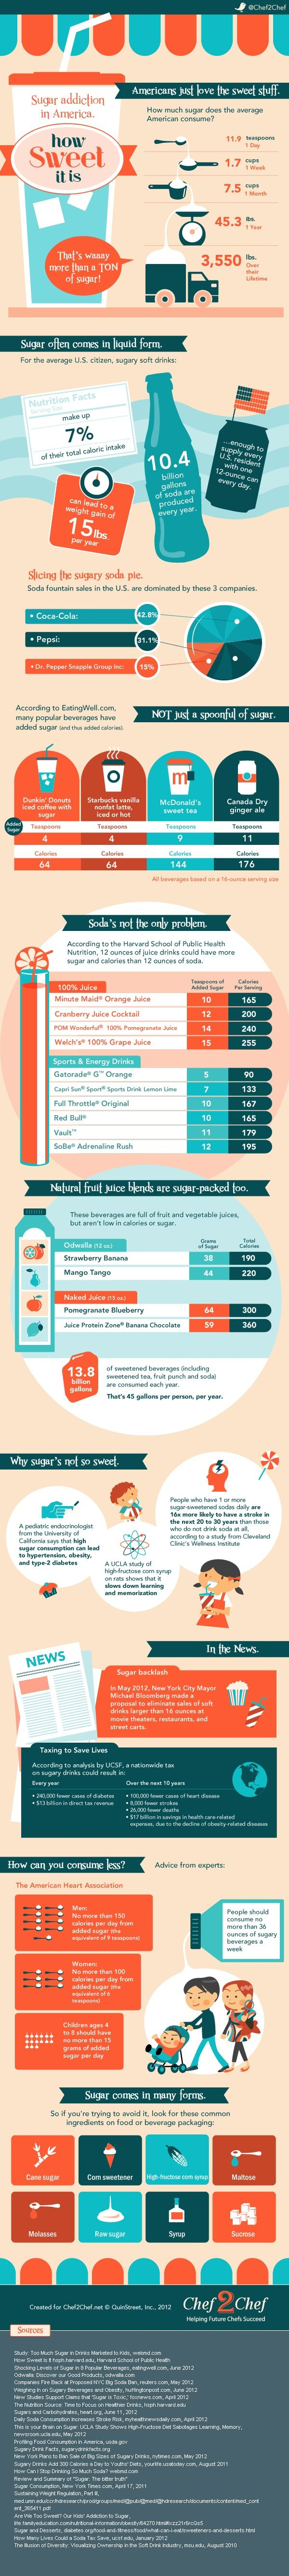 An infographic about sugar addiction in America, and where it's all coming from.